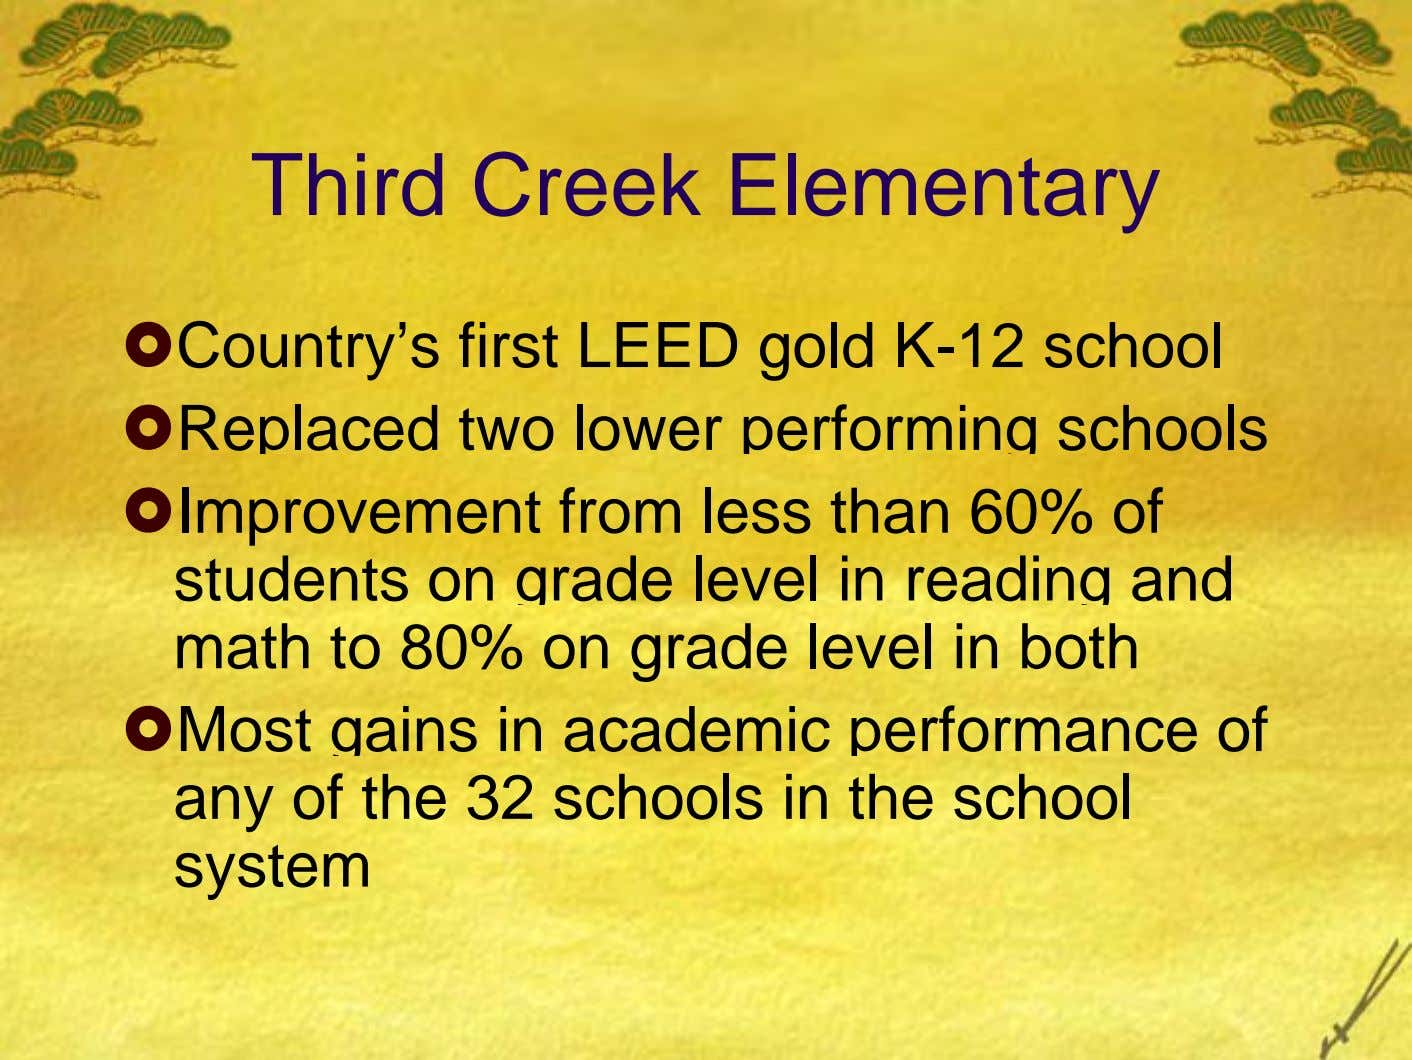 Third Creek Elementary Country's first LEED gold K-12 school Replaced two lower performing schools Improvement from